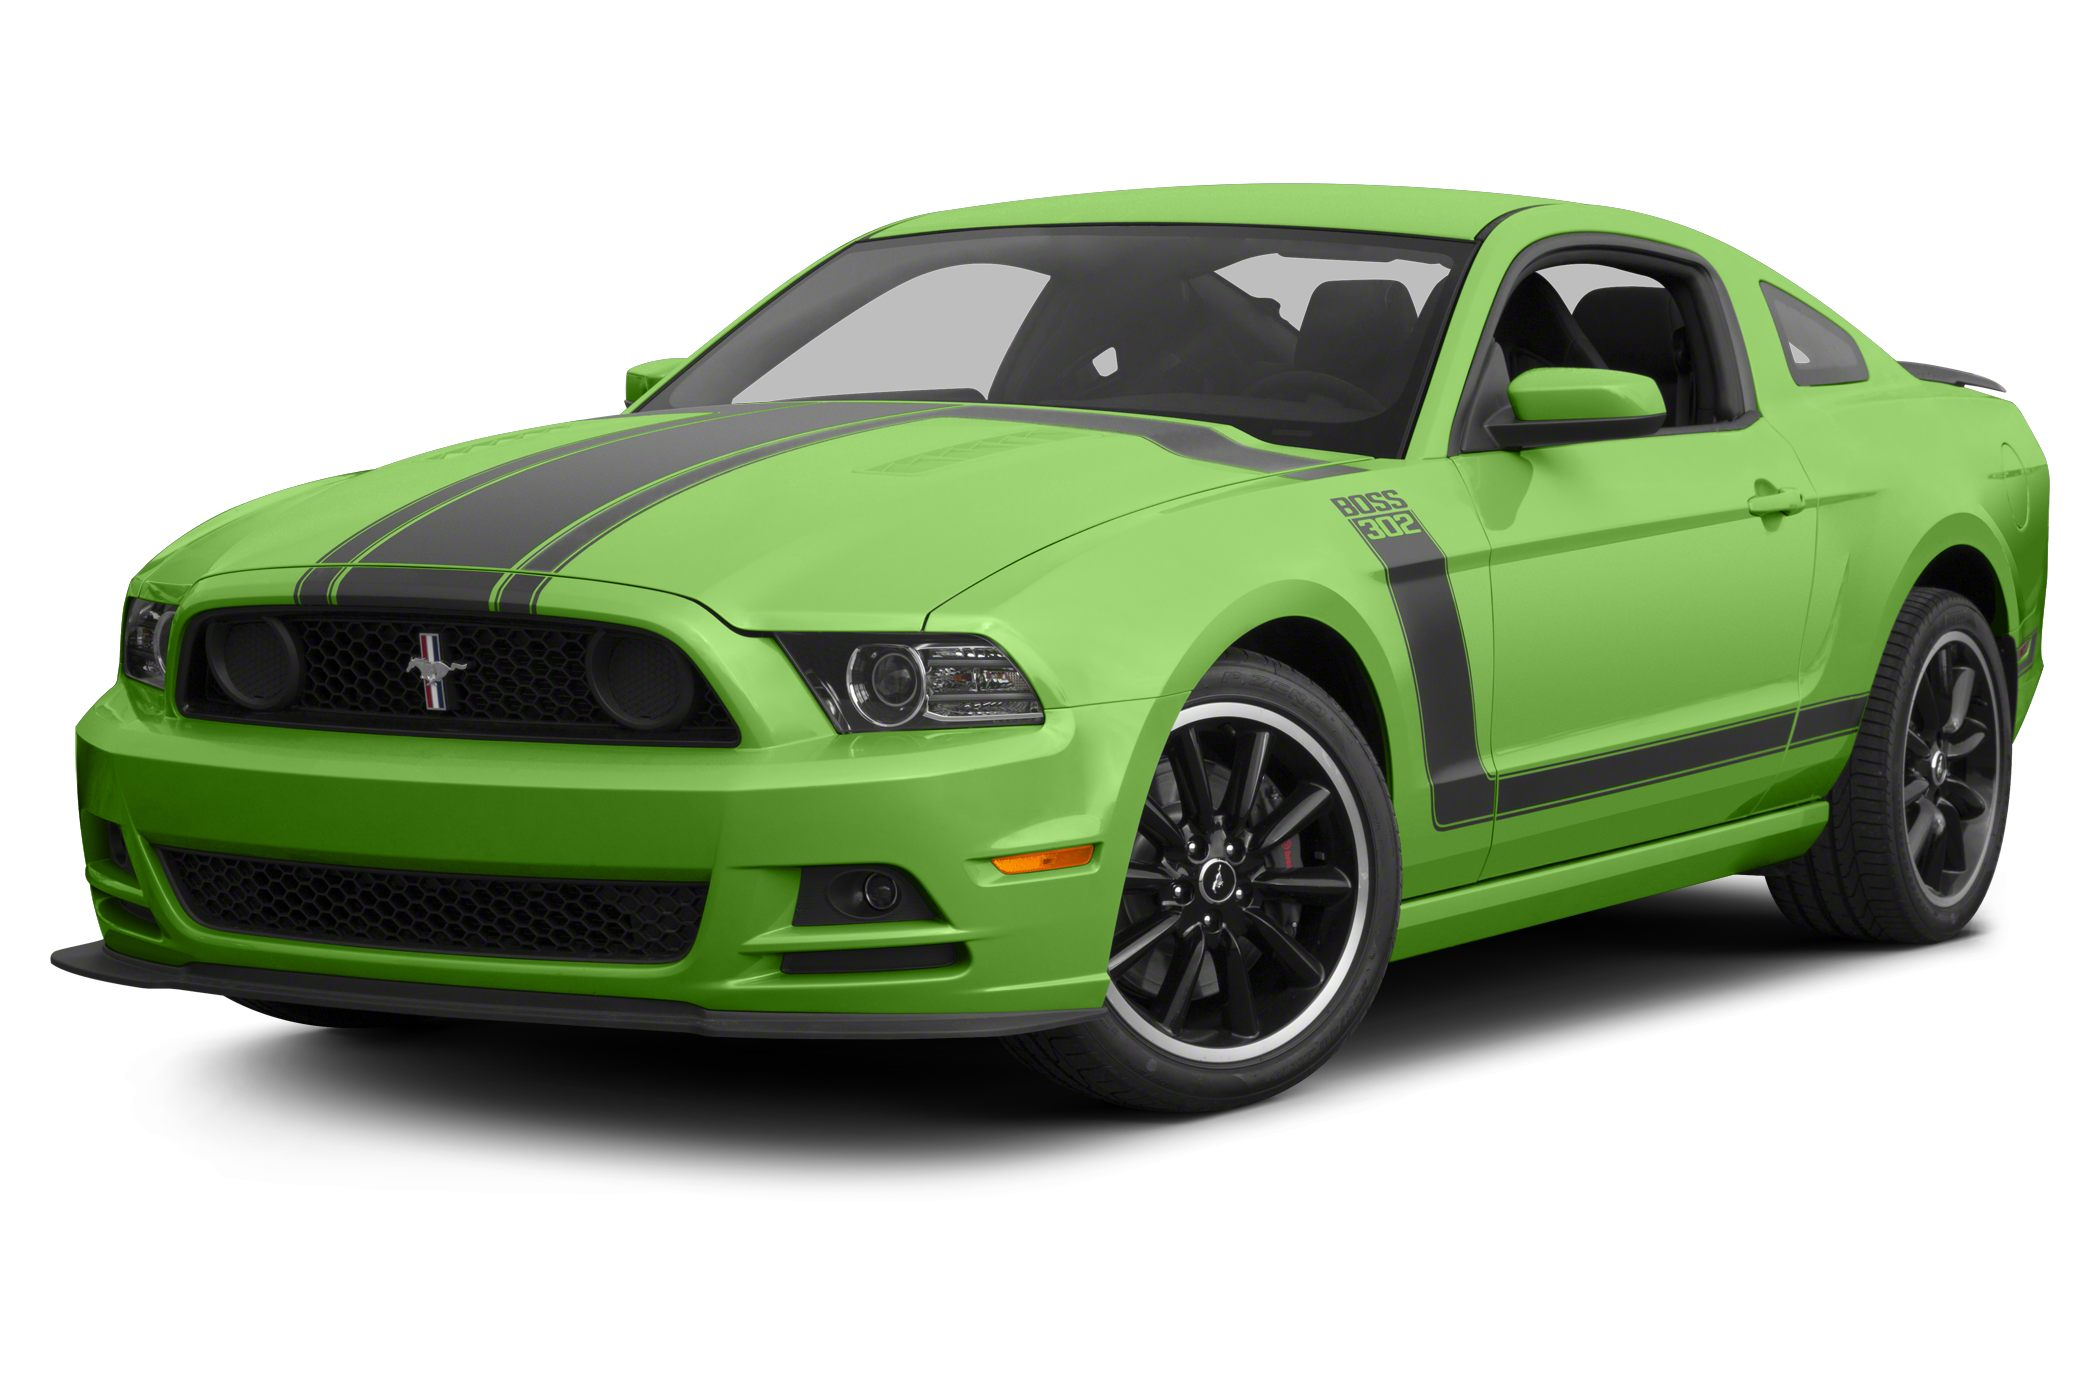 2013 Ford Mustang Boss 302 Coupe for sale in Euless for $41,991 with 12,050 miles